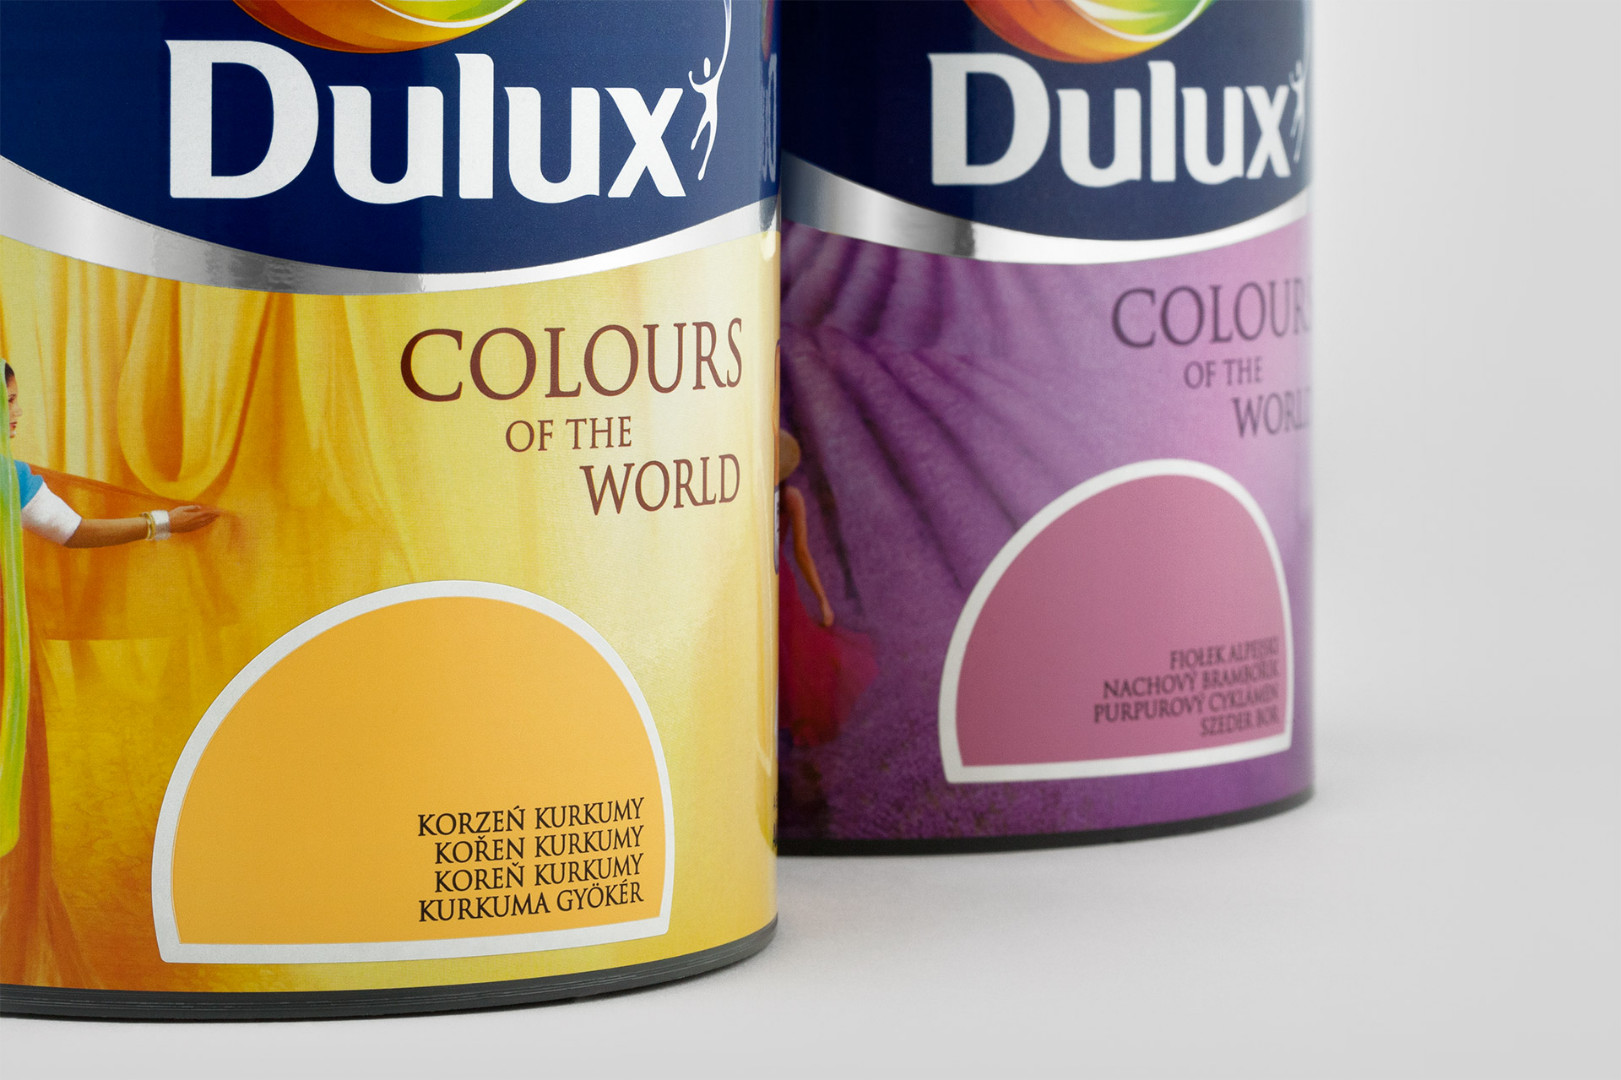 Picture no 2 Dulux